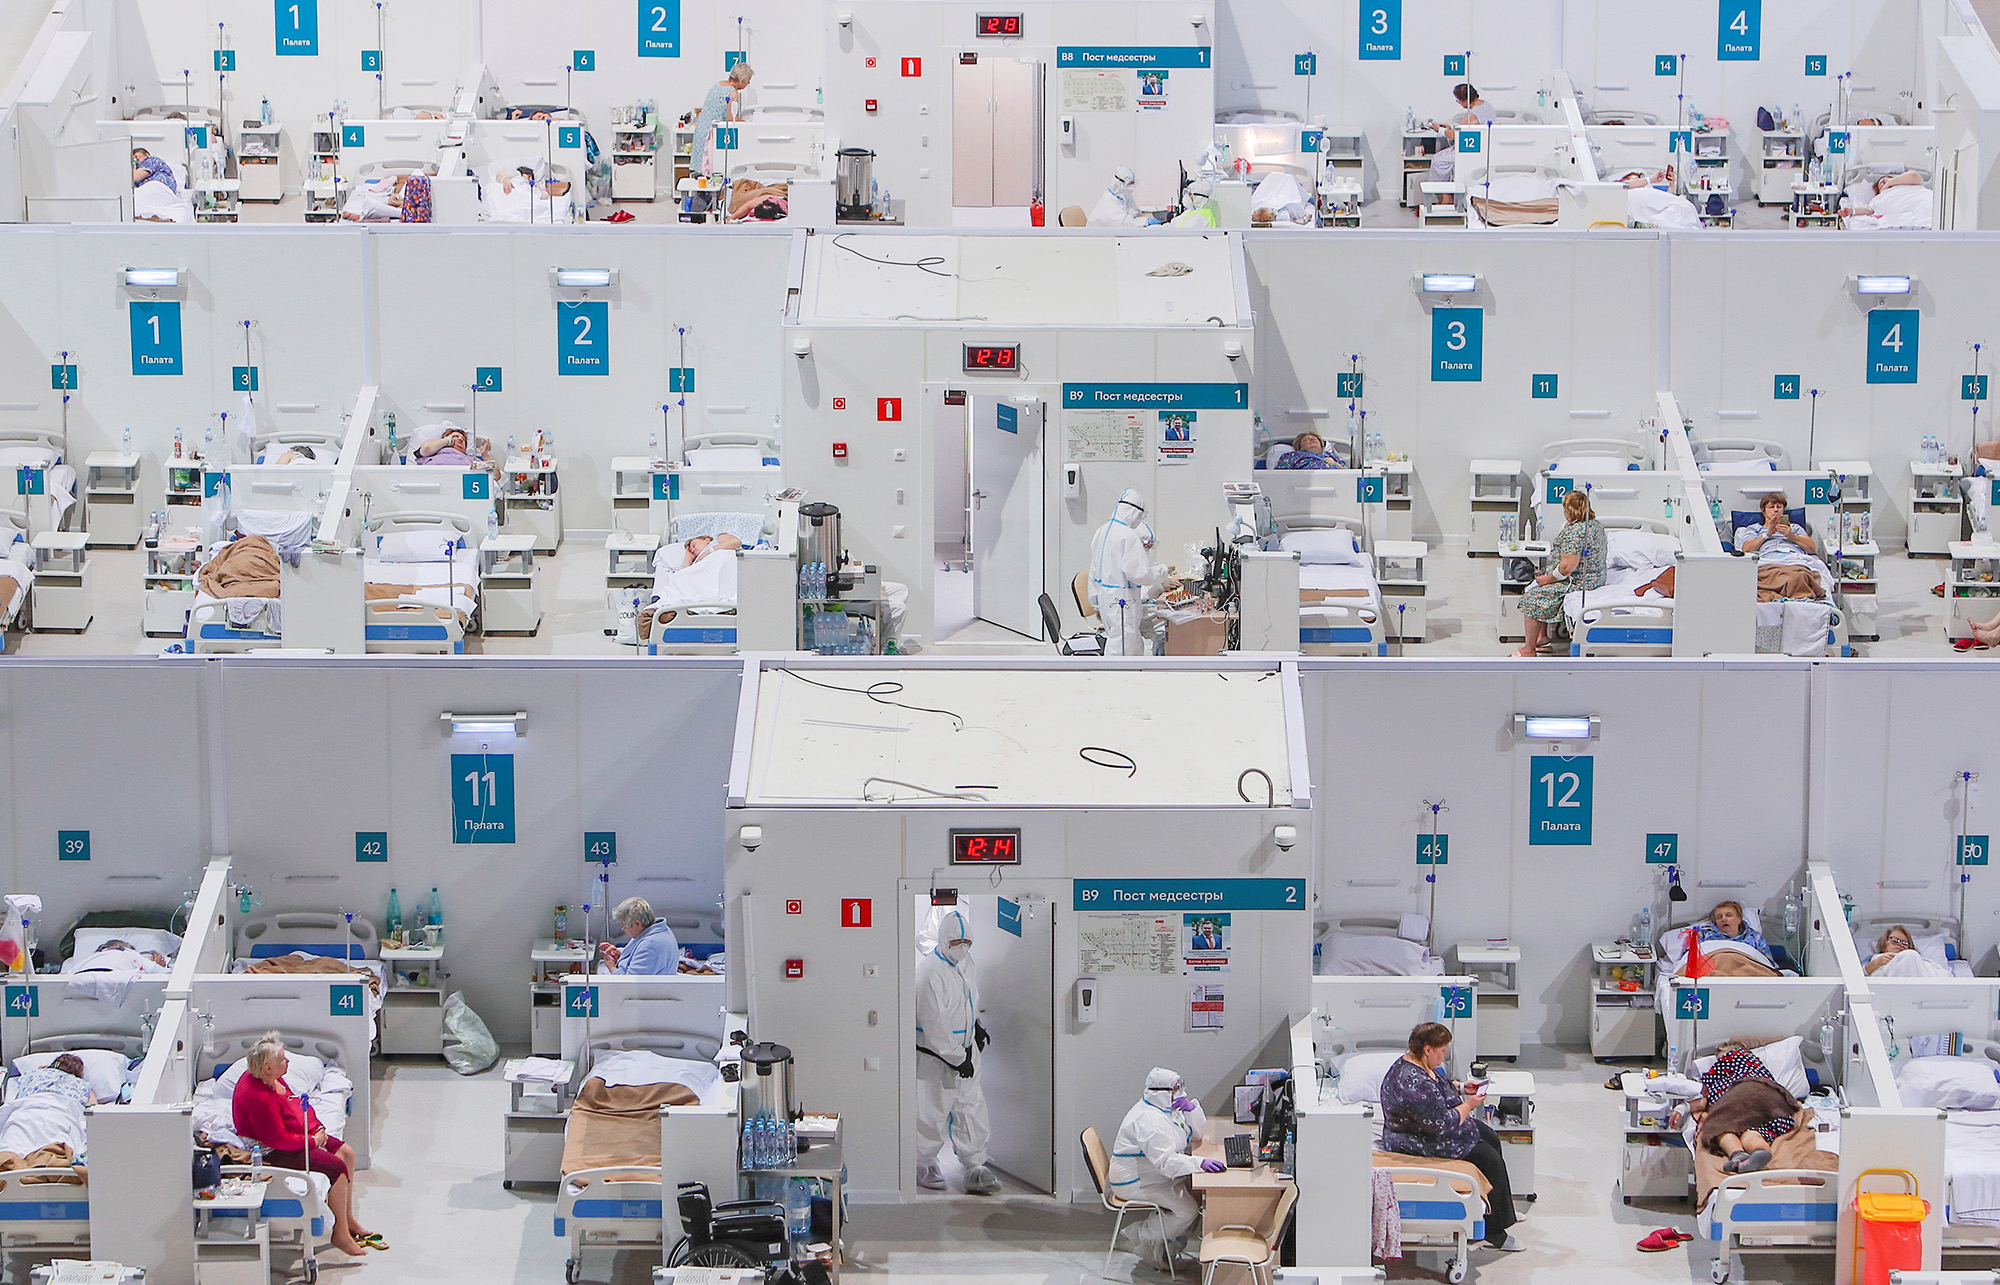 A general view of treatment blocks at a temporary hospital in the Krylatskoye Ice Palace, where patients suffering from the coronavirus disease (COVID-19) are treated, in Moscow, Russia November 13, 2020. Picture taken November 13, 2020. REUTERS/Maxim Shemetov